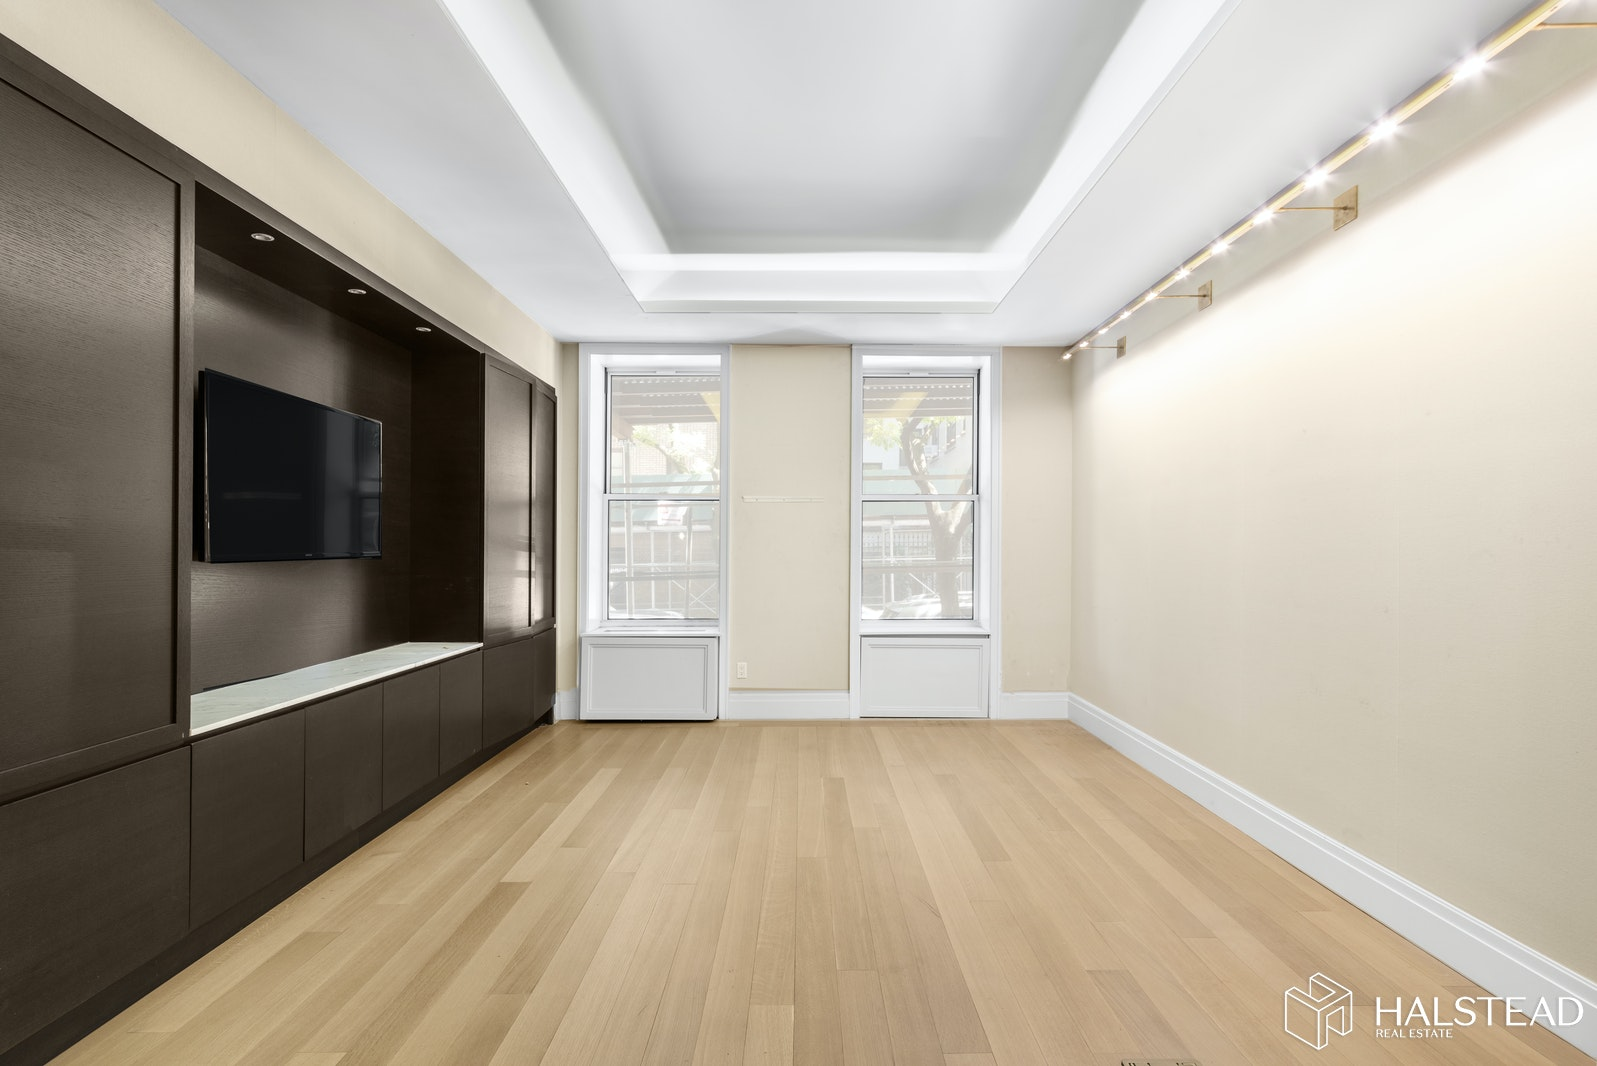 498 WEST END AVENUE 1C, Upper West Side, $1,995,000, Web #: 20211215